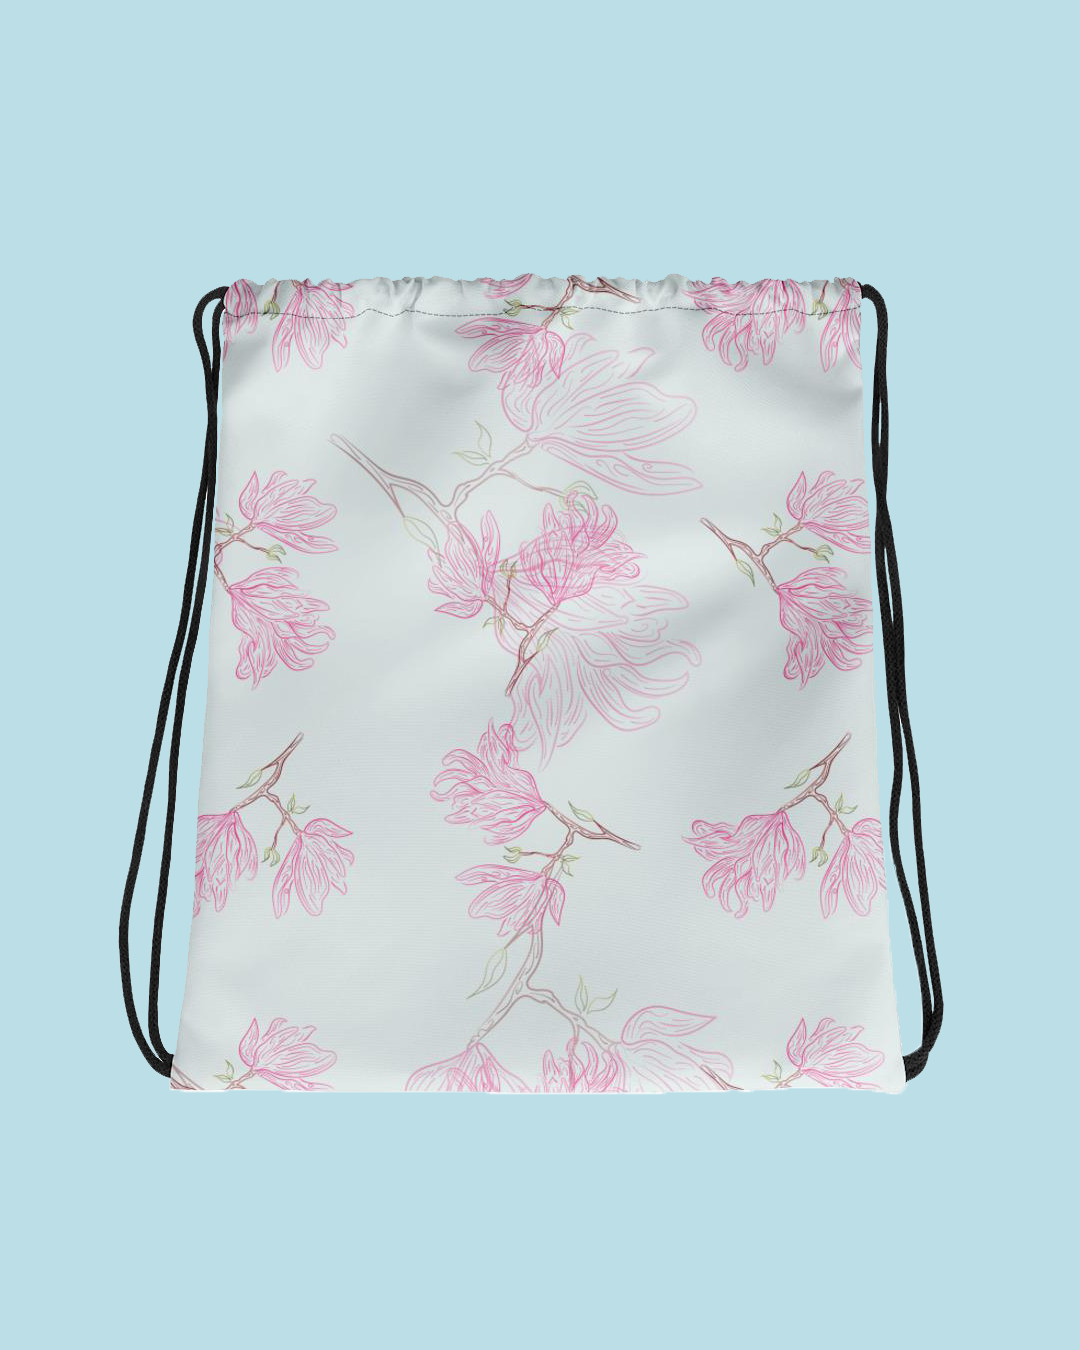 """Adversity"" Drawstring bag"